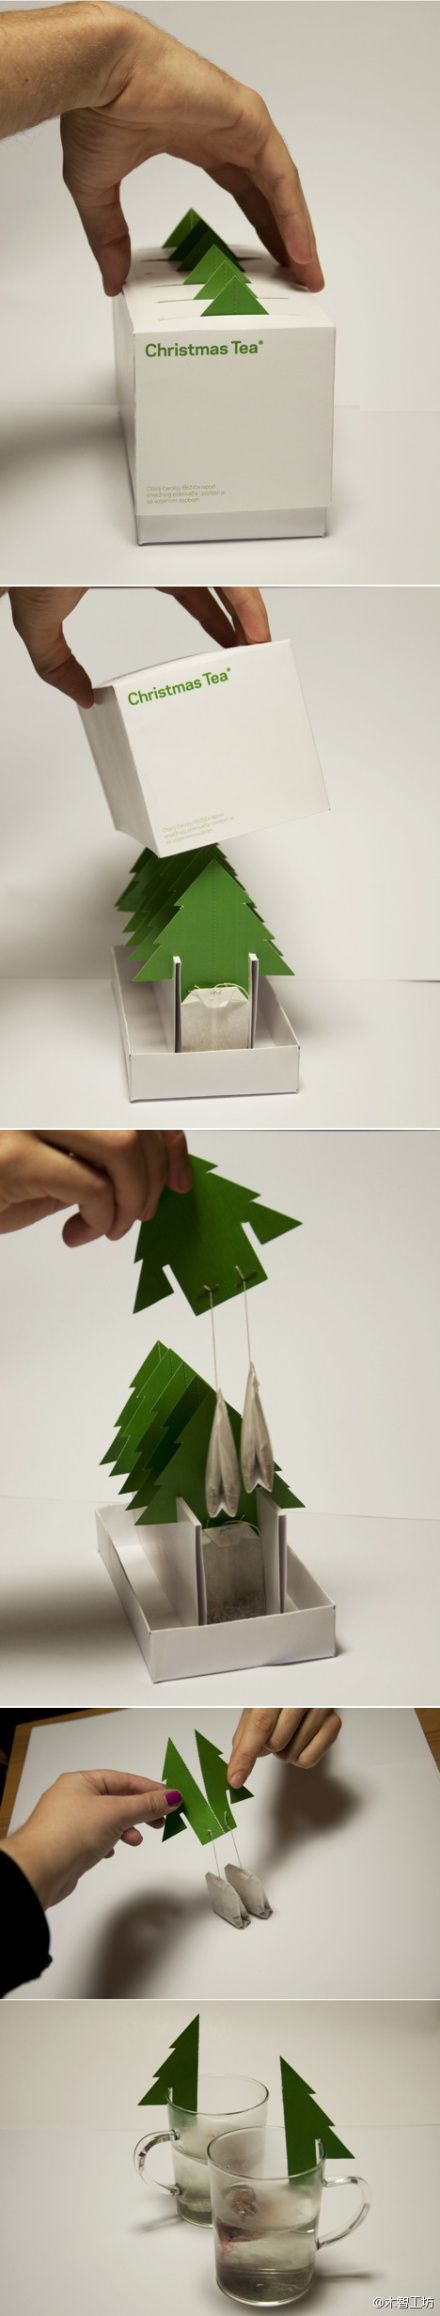 Christmas tree tea bags (Christmas Tea). - This would be an easy project to make... great homemade gift idea.